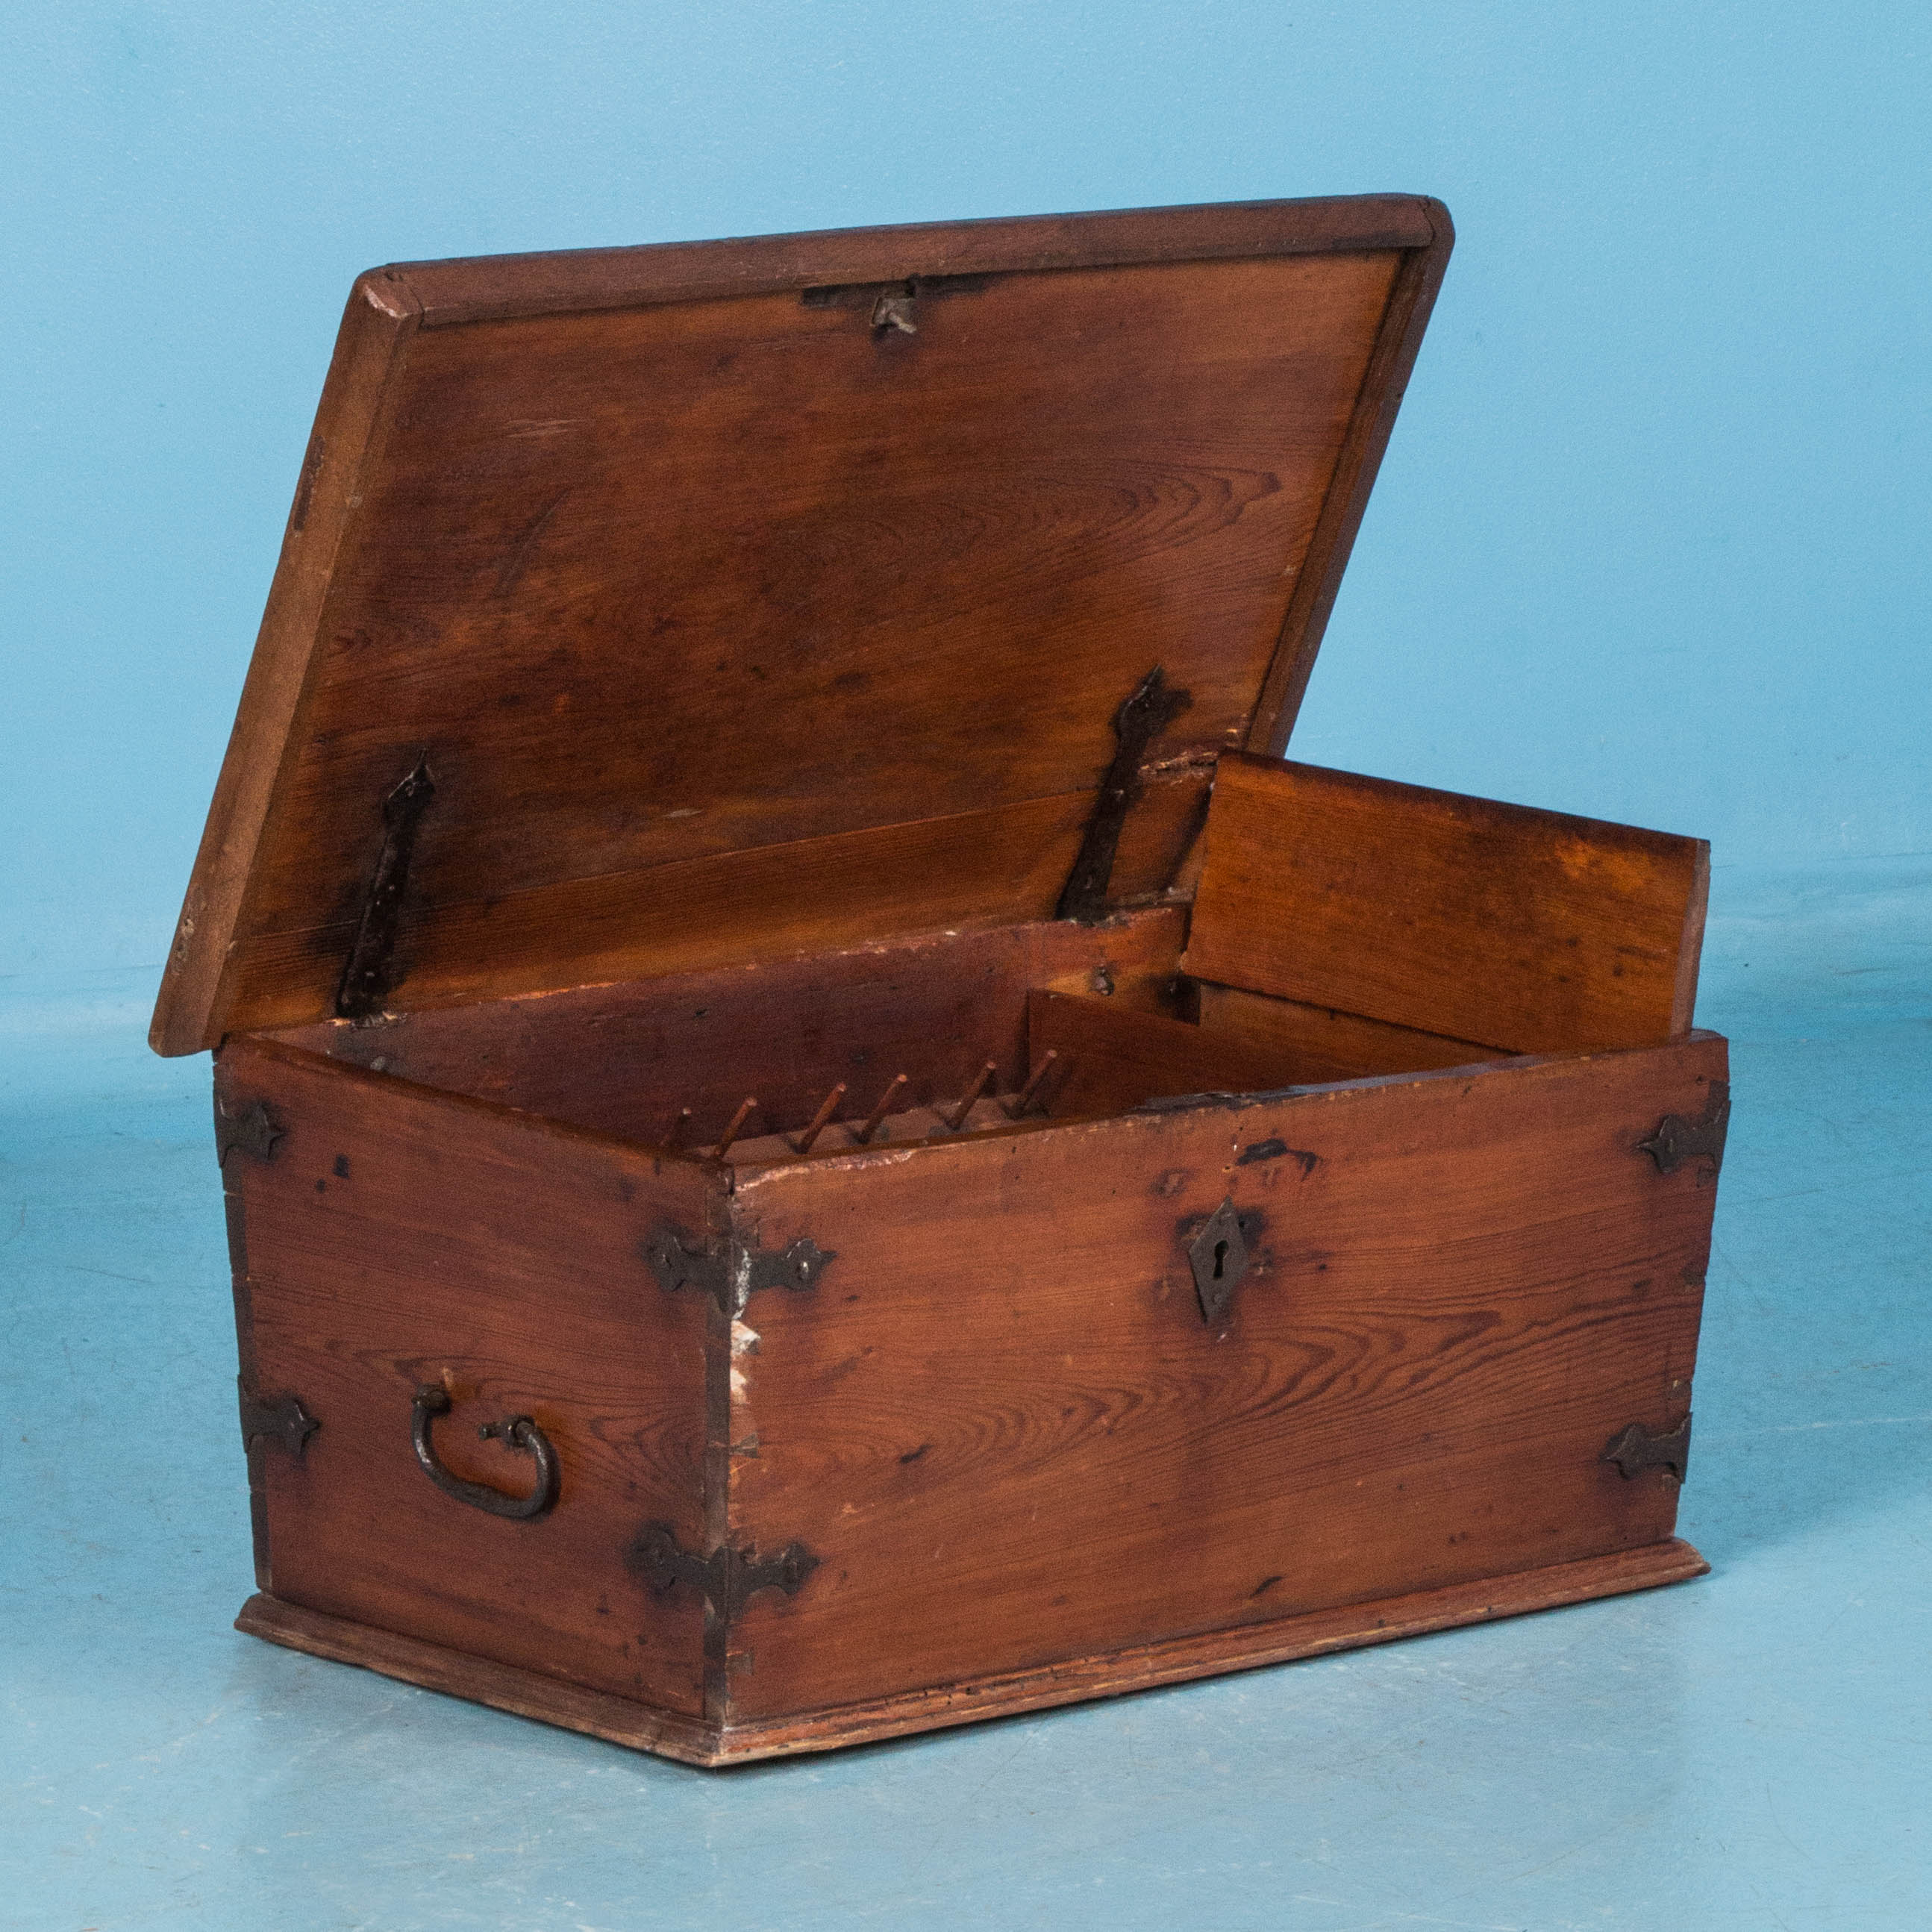 tisdale-nude-dating-antique-trunk-hardware